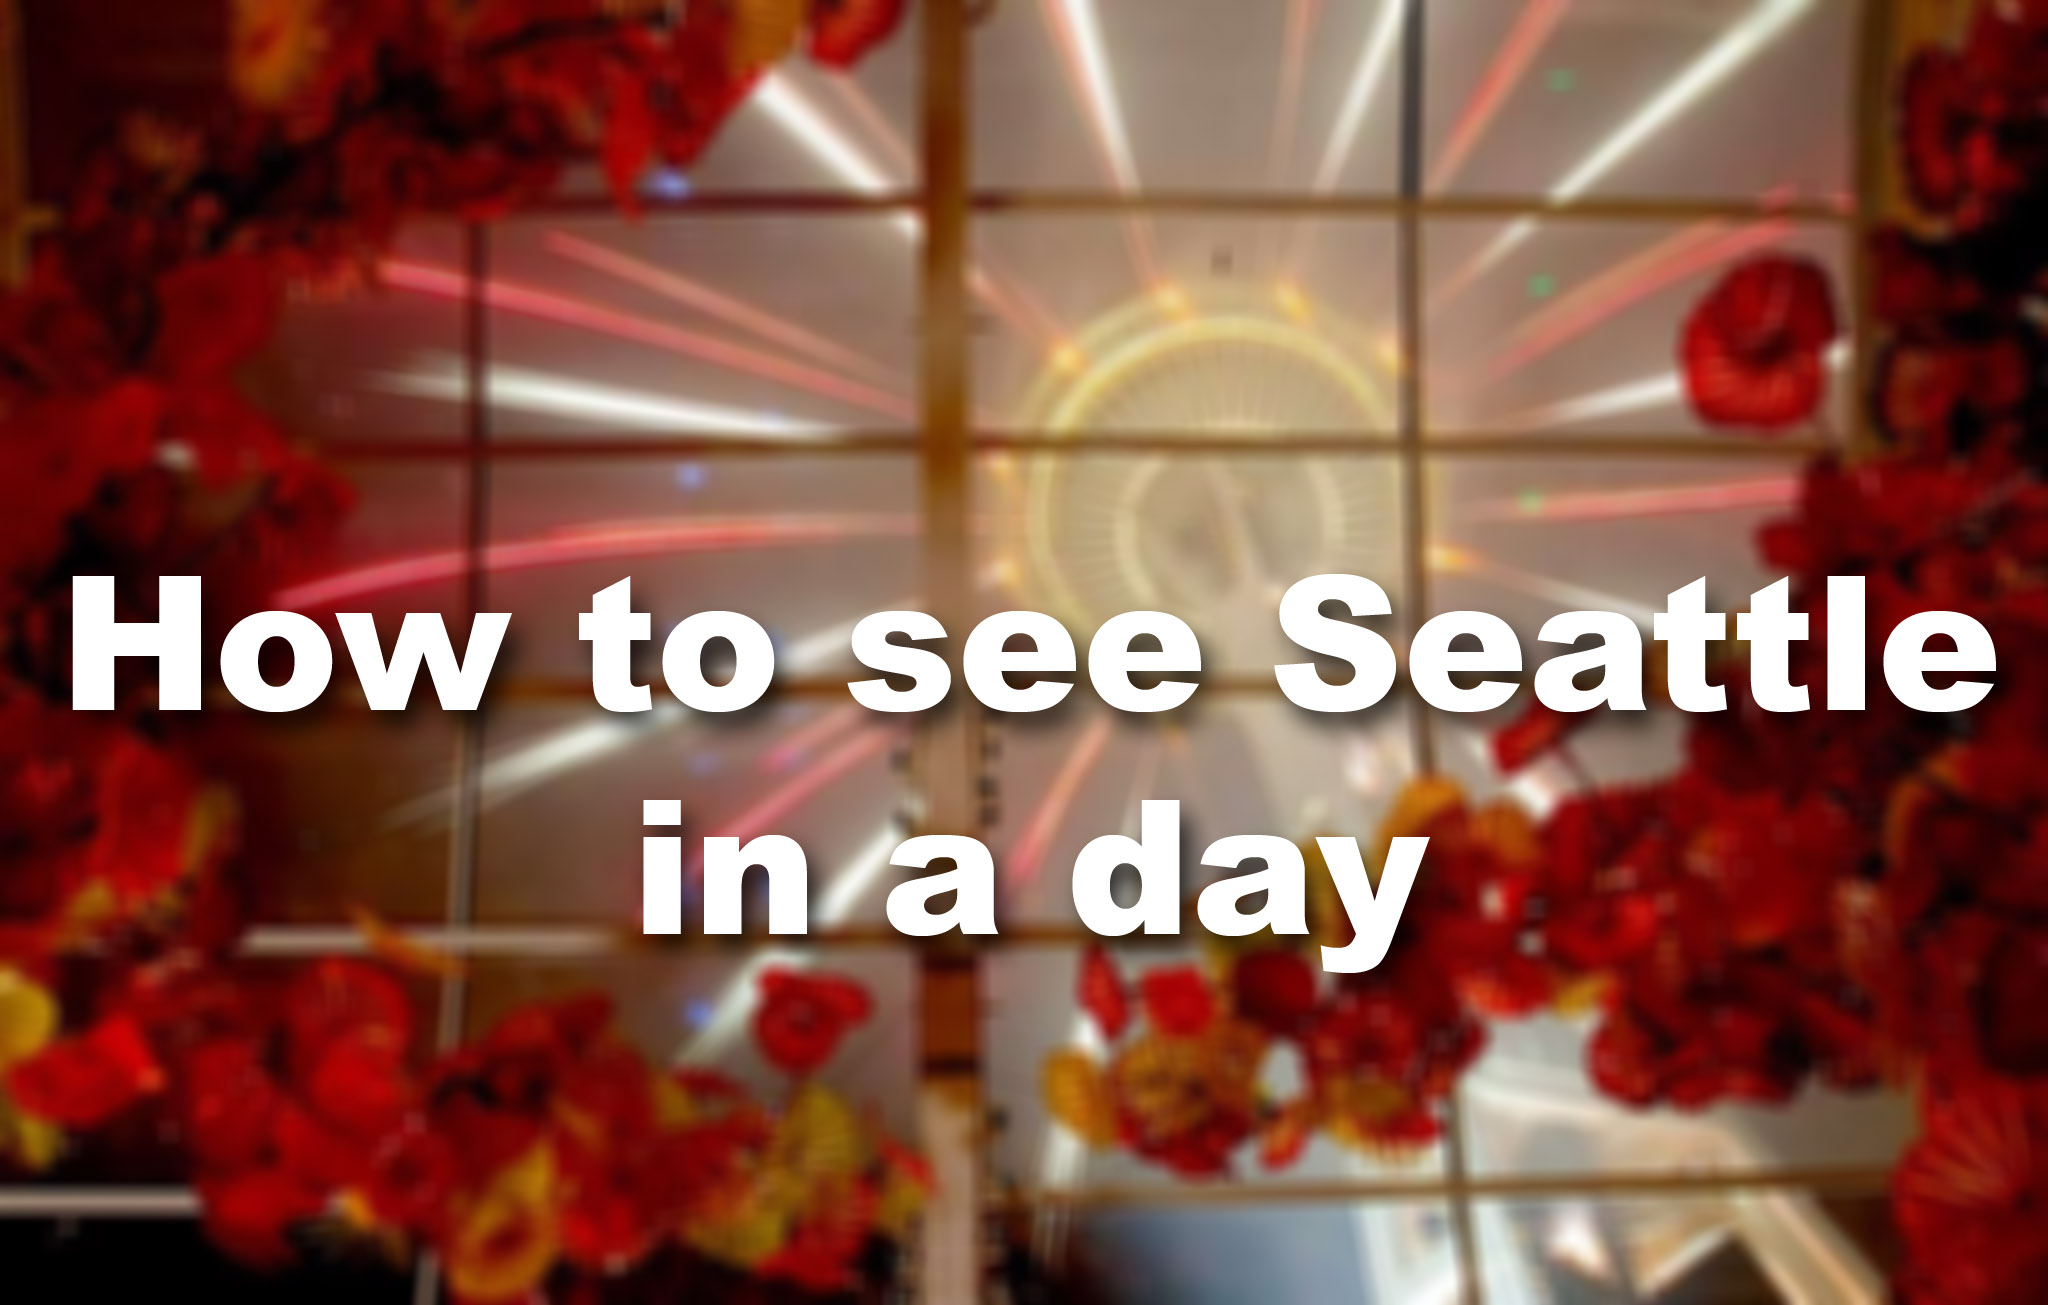 With cruise season underway, here's how to see Seattle in a day